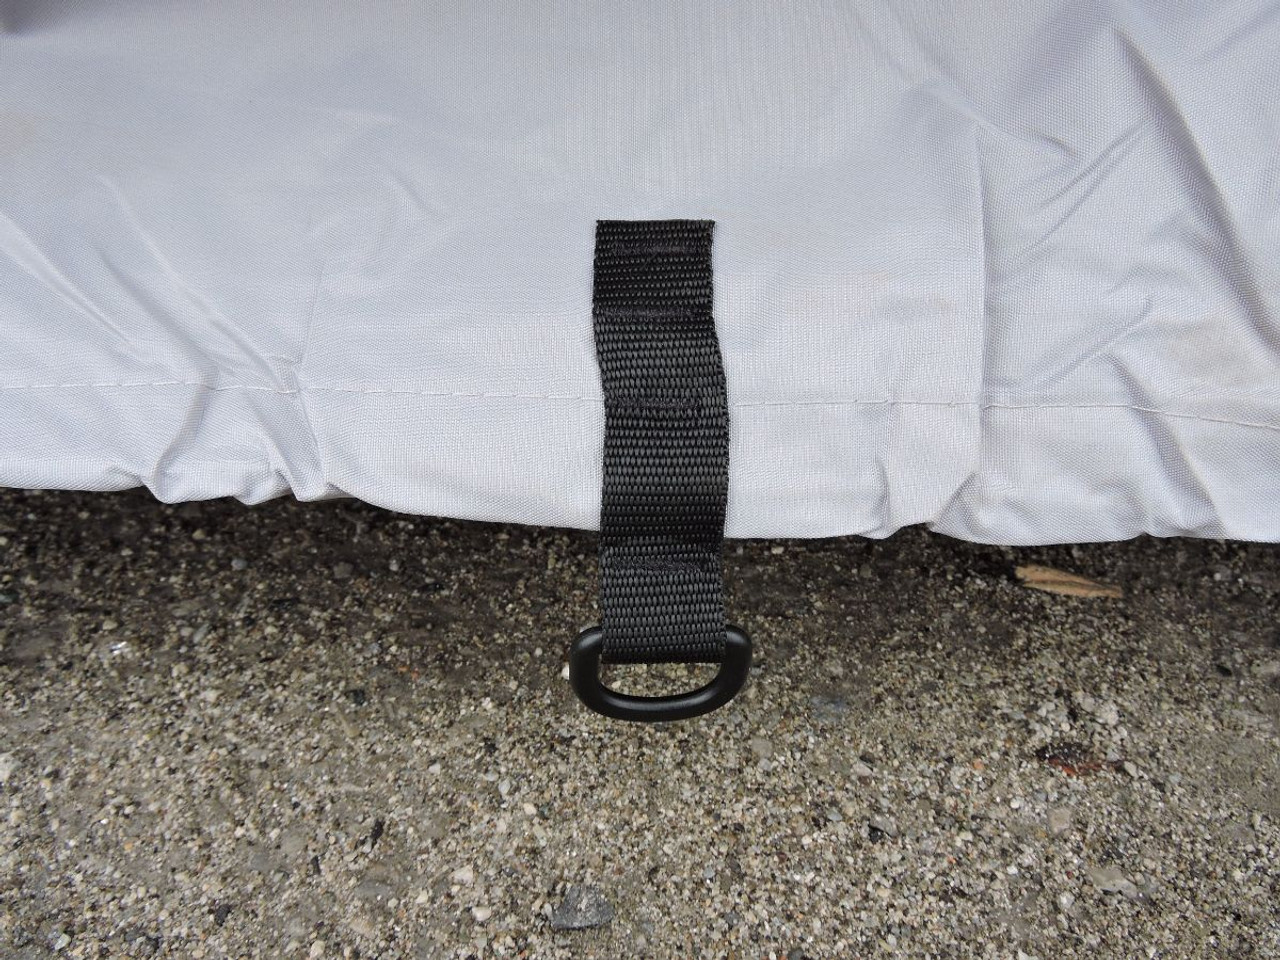 Venture UTV side by side cover strong elestic hem and tie downs